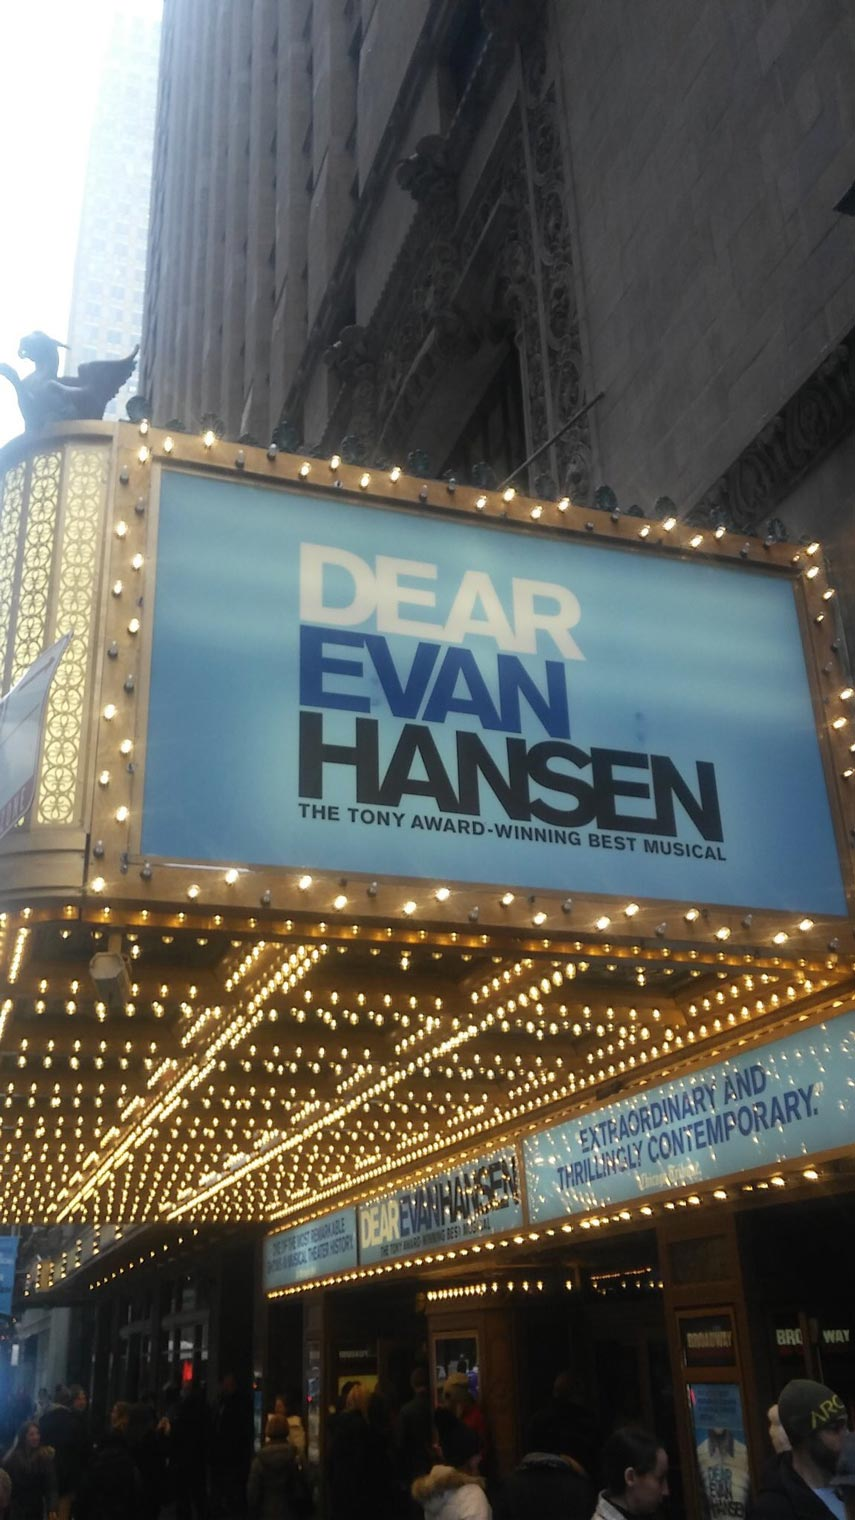 dear evan hansen tour locations